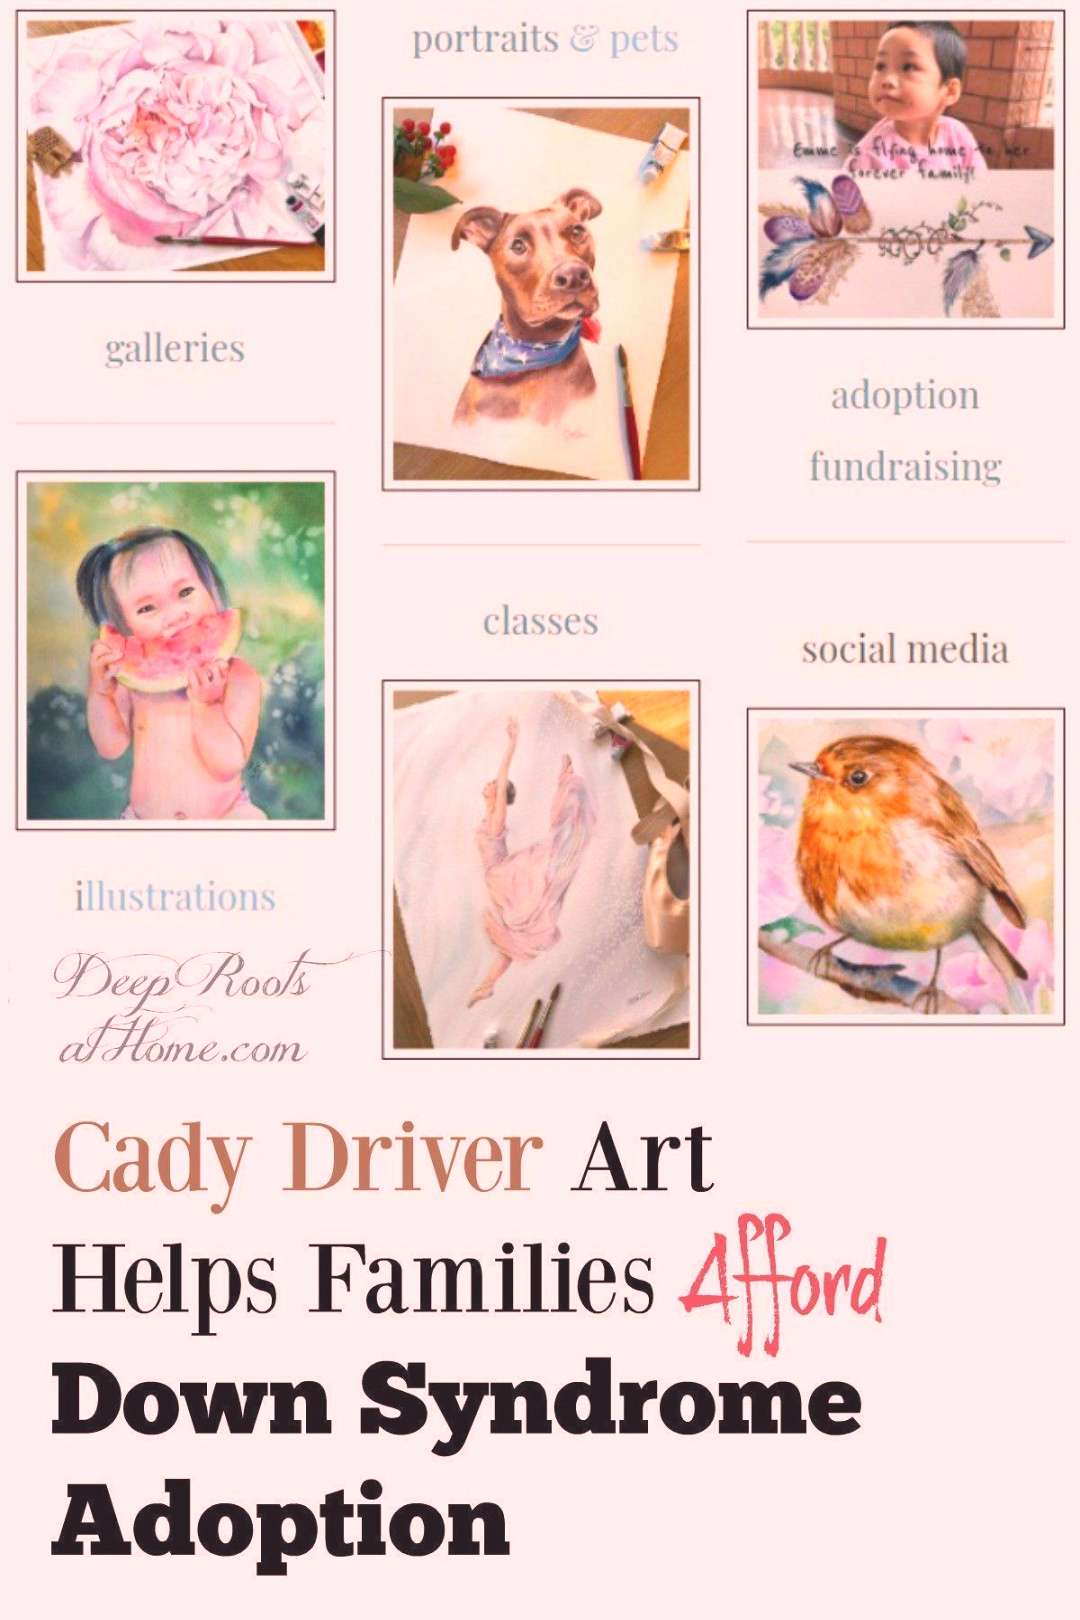 Cady Driver Art Helps Families Afford Down Syndrome Adoption. | watercolor childrens portraits | wa